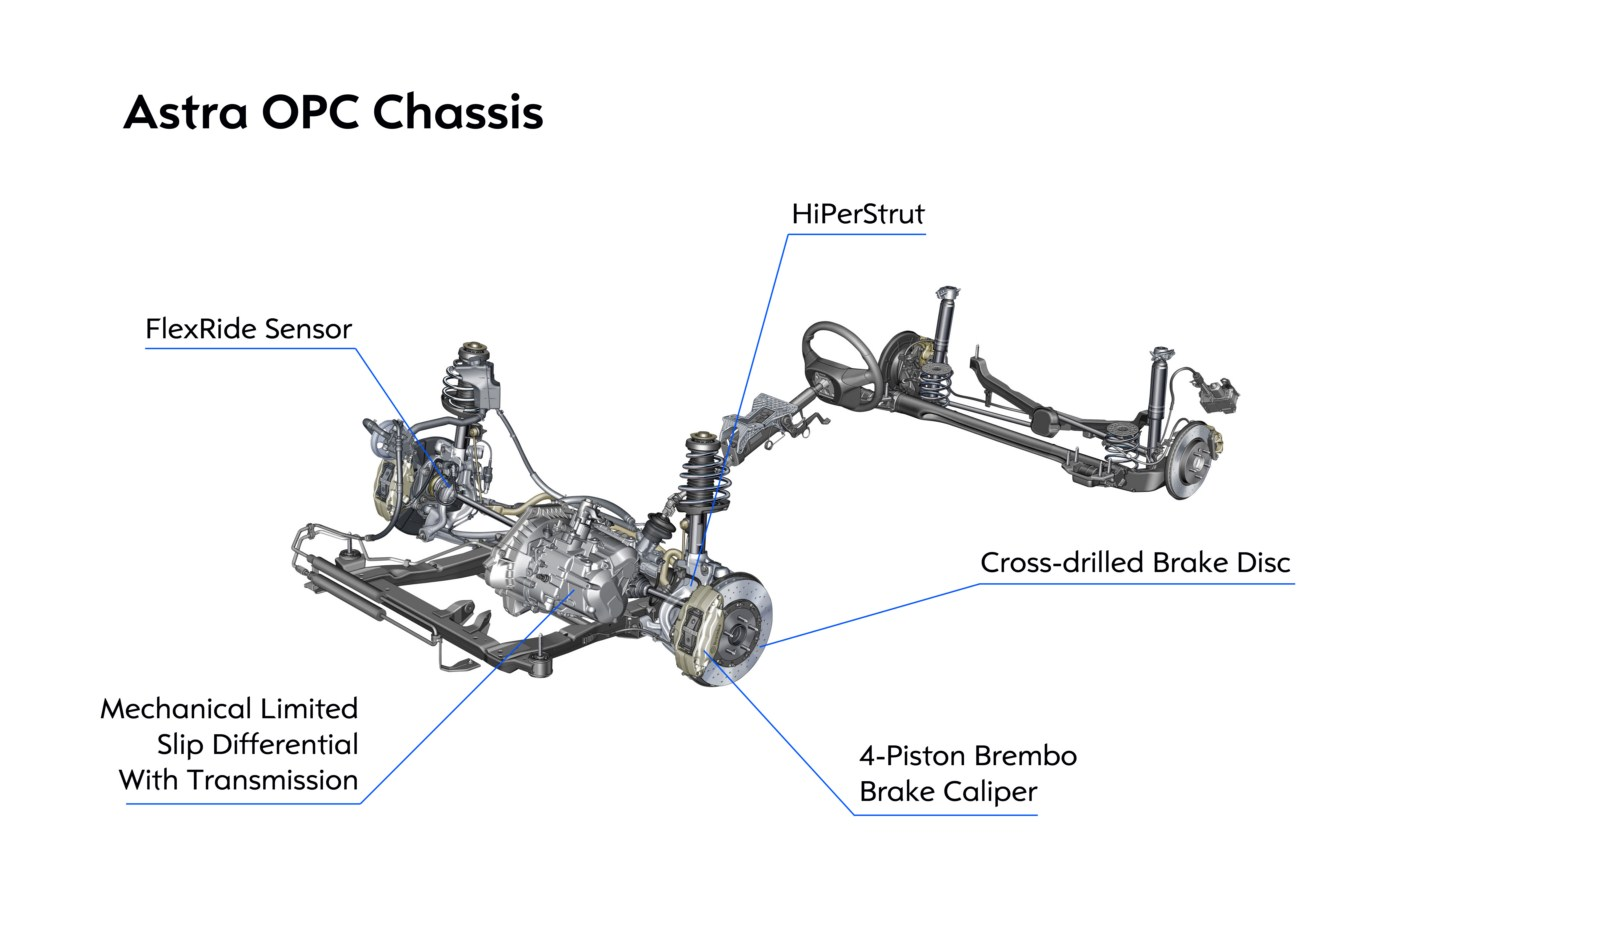 opel-astra-opc-2012-chassis-5.jpg